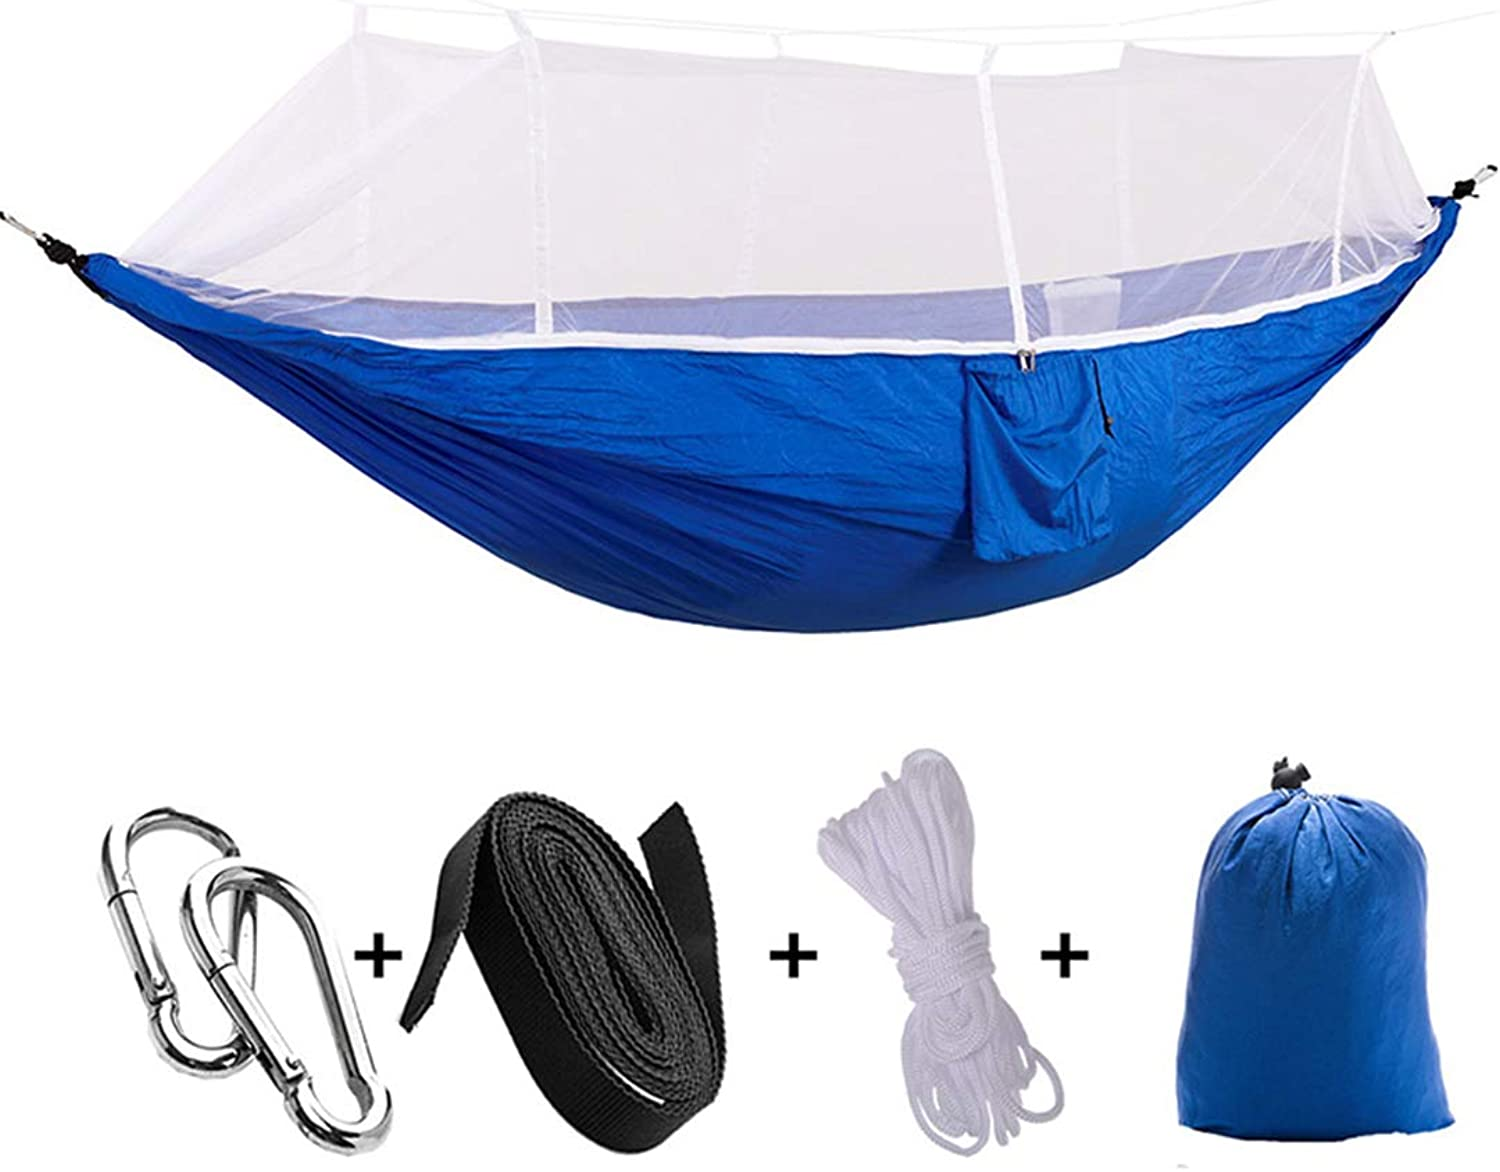 Portable Hammock Double Single Folded Person in Bag Mosquito Hook Hanging Bed for Camping Travel Kits Outdoor Camping